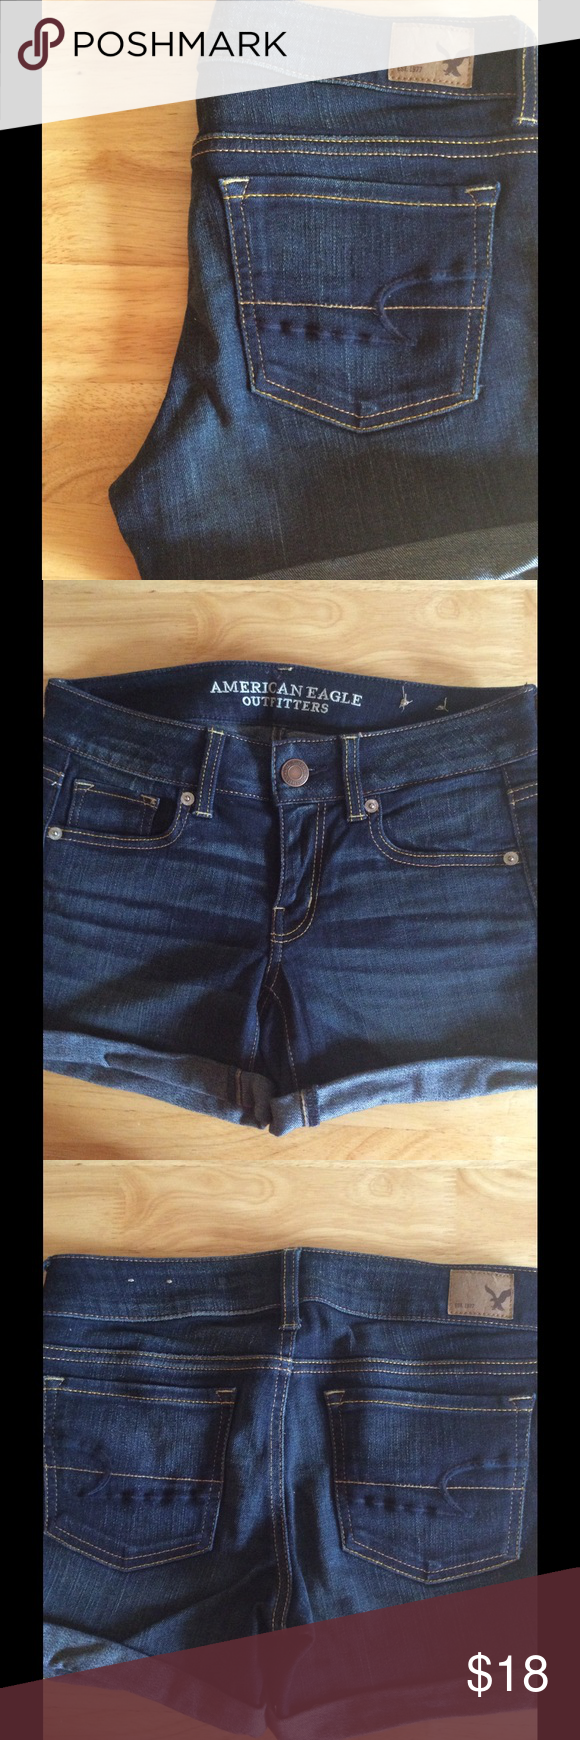 American Eagle Dark Jean Shorts Mid-length, inseam about 3 inches. Super comfortable and very lightly worn, like new! Open to offers! American Eagle Outfitters Shorts Jean Shorts